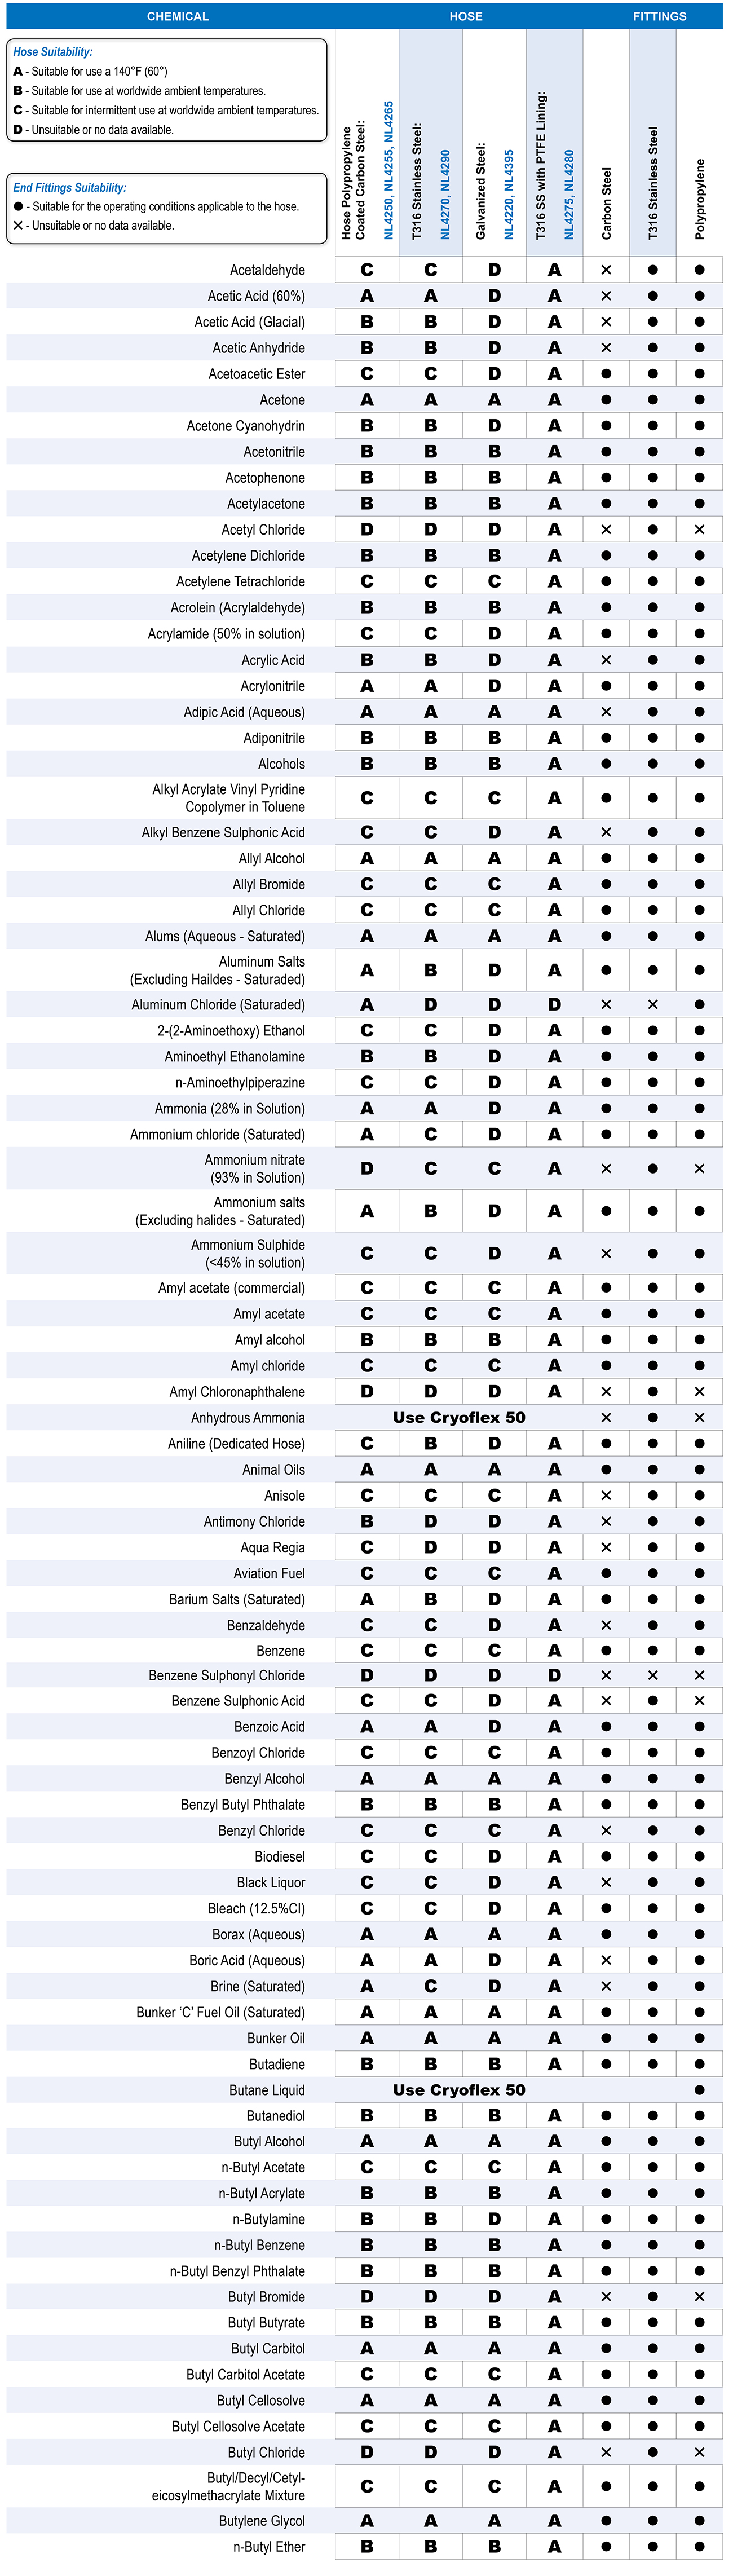 Composite hose chemical compatibility chart for fluids that are not listed or service conditions outside the scope of those described please contact us nvjuhfo Choice Image